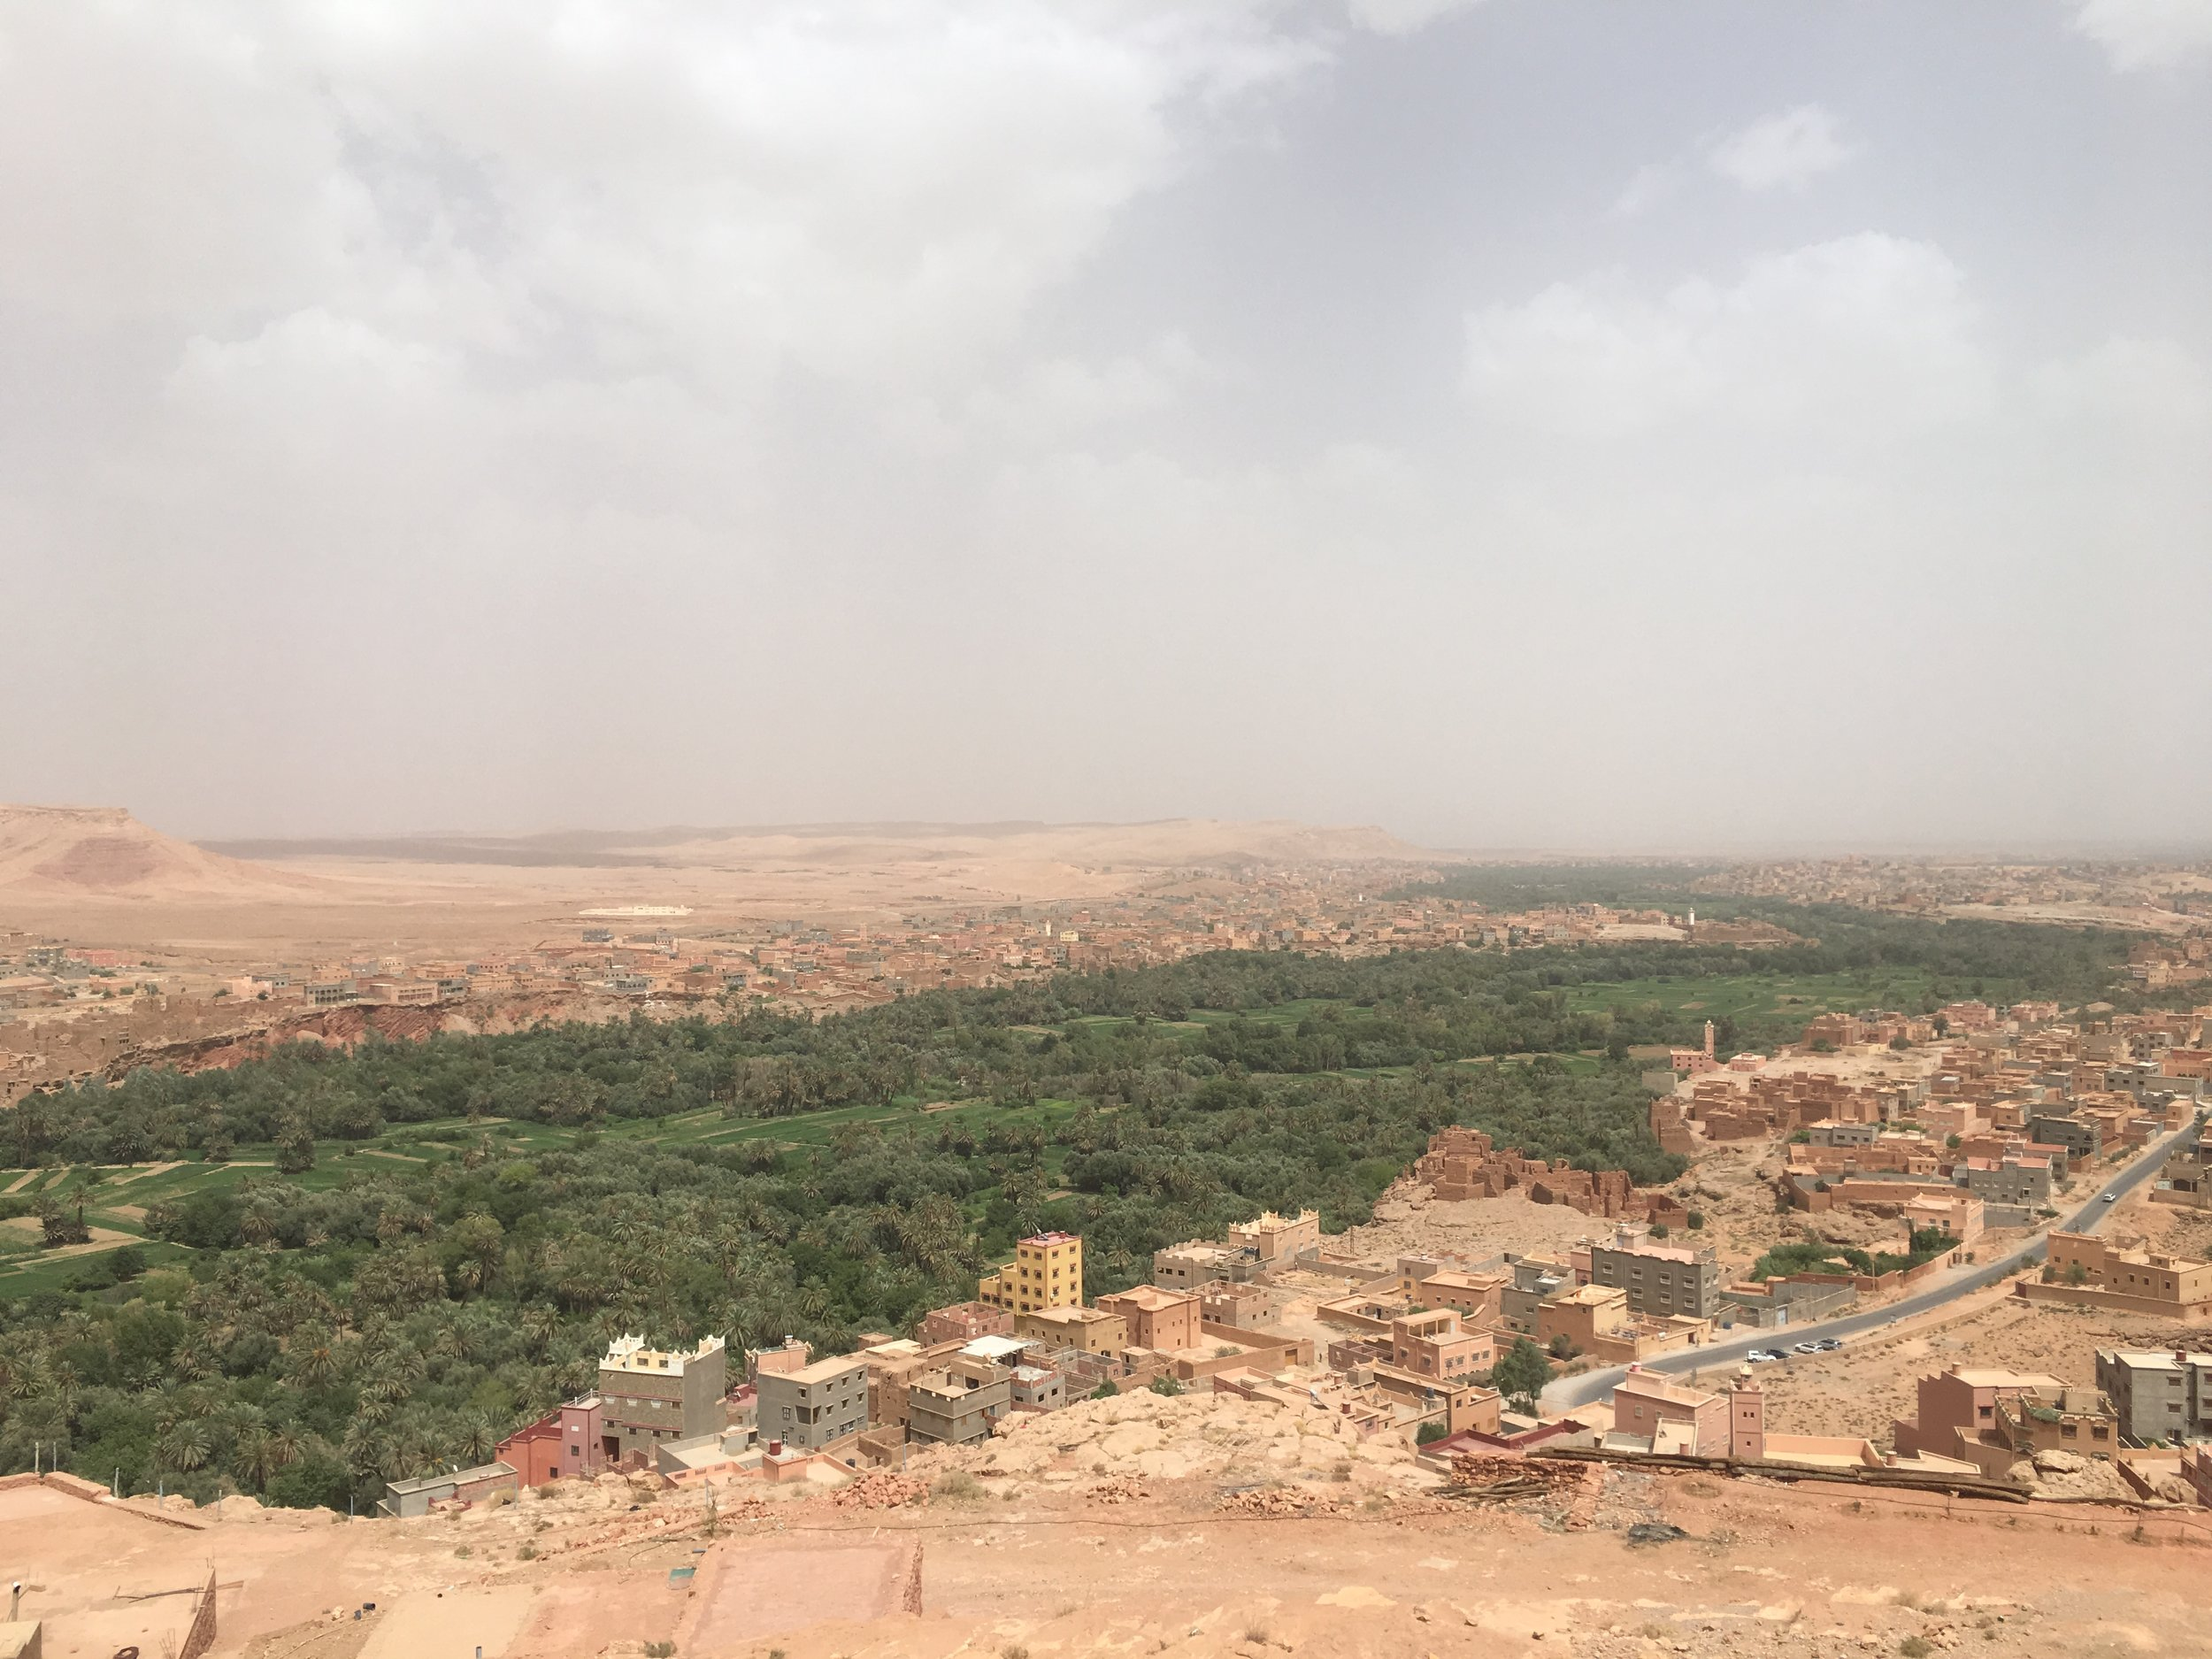 The Berber communities that surround the Ziz river are mostly made from sun-dried clay.